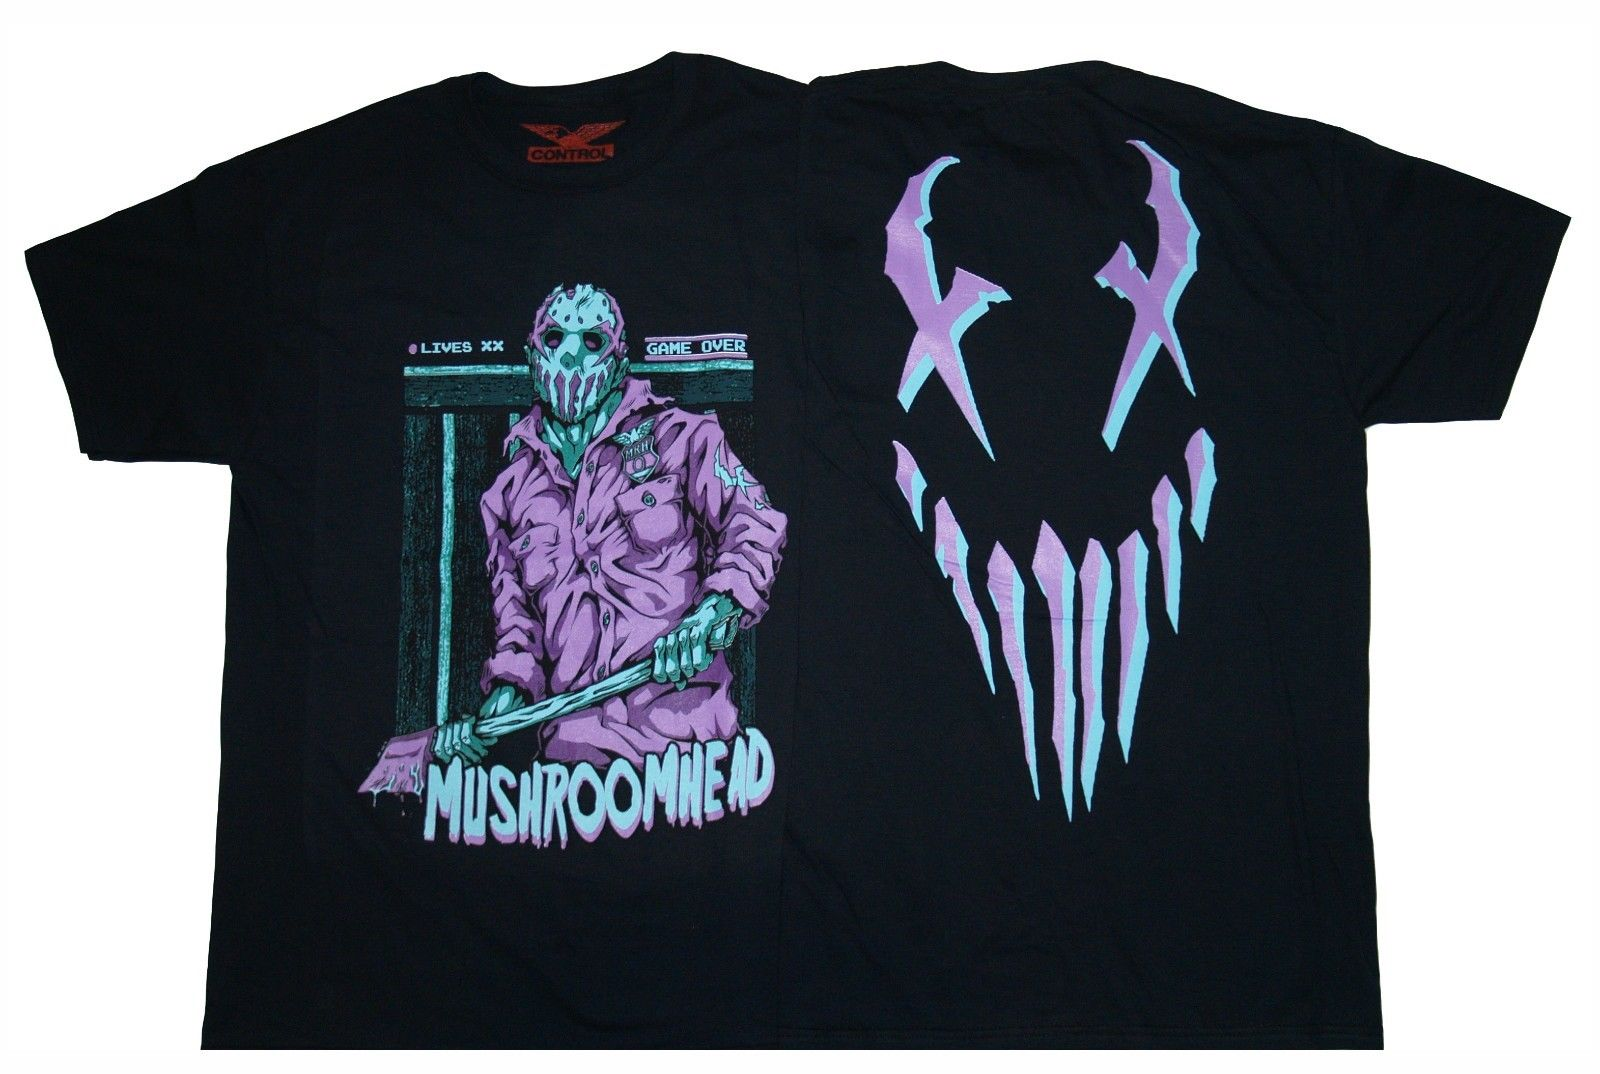 MUSHROOMHEAD - Friday The 13th Jason Voorhees T SHIRT S-M-L-XL-2XL New Official Short Sleeve Round Neck T-Shirt Promotion ...